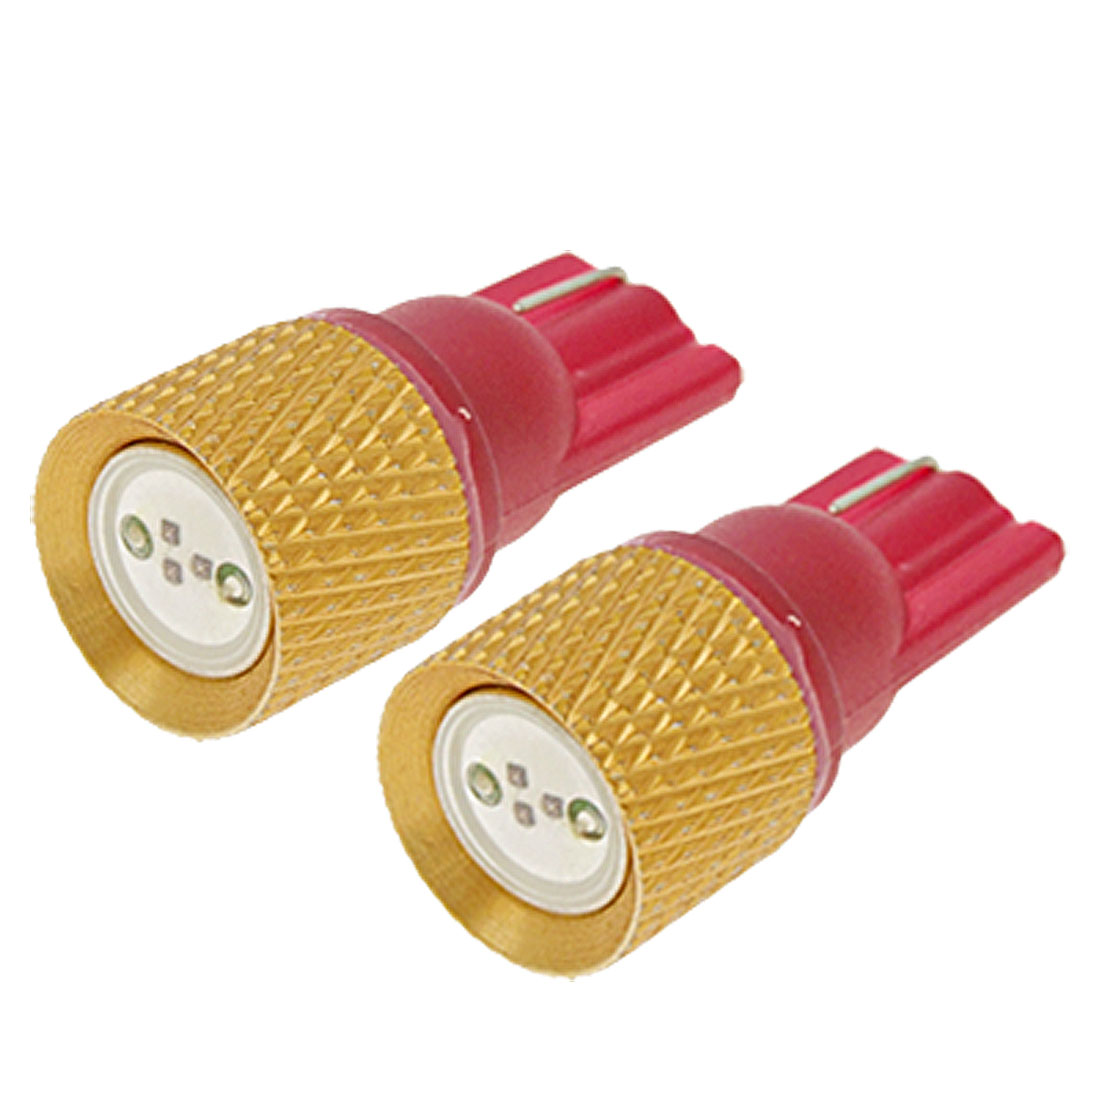 Pair T10 194 Red LED Car Auto Wedge Bulbs Lights Lamps 12V